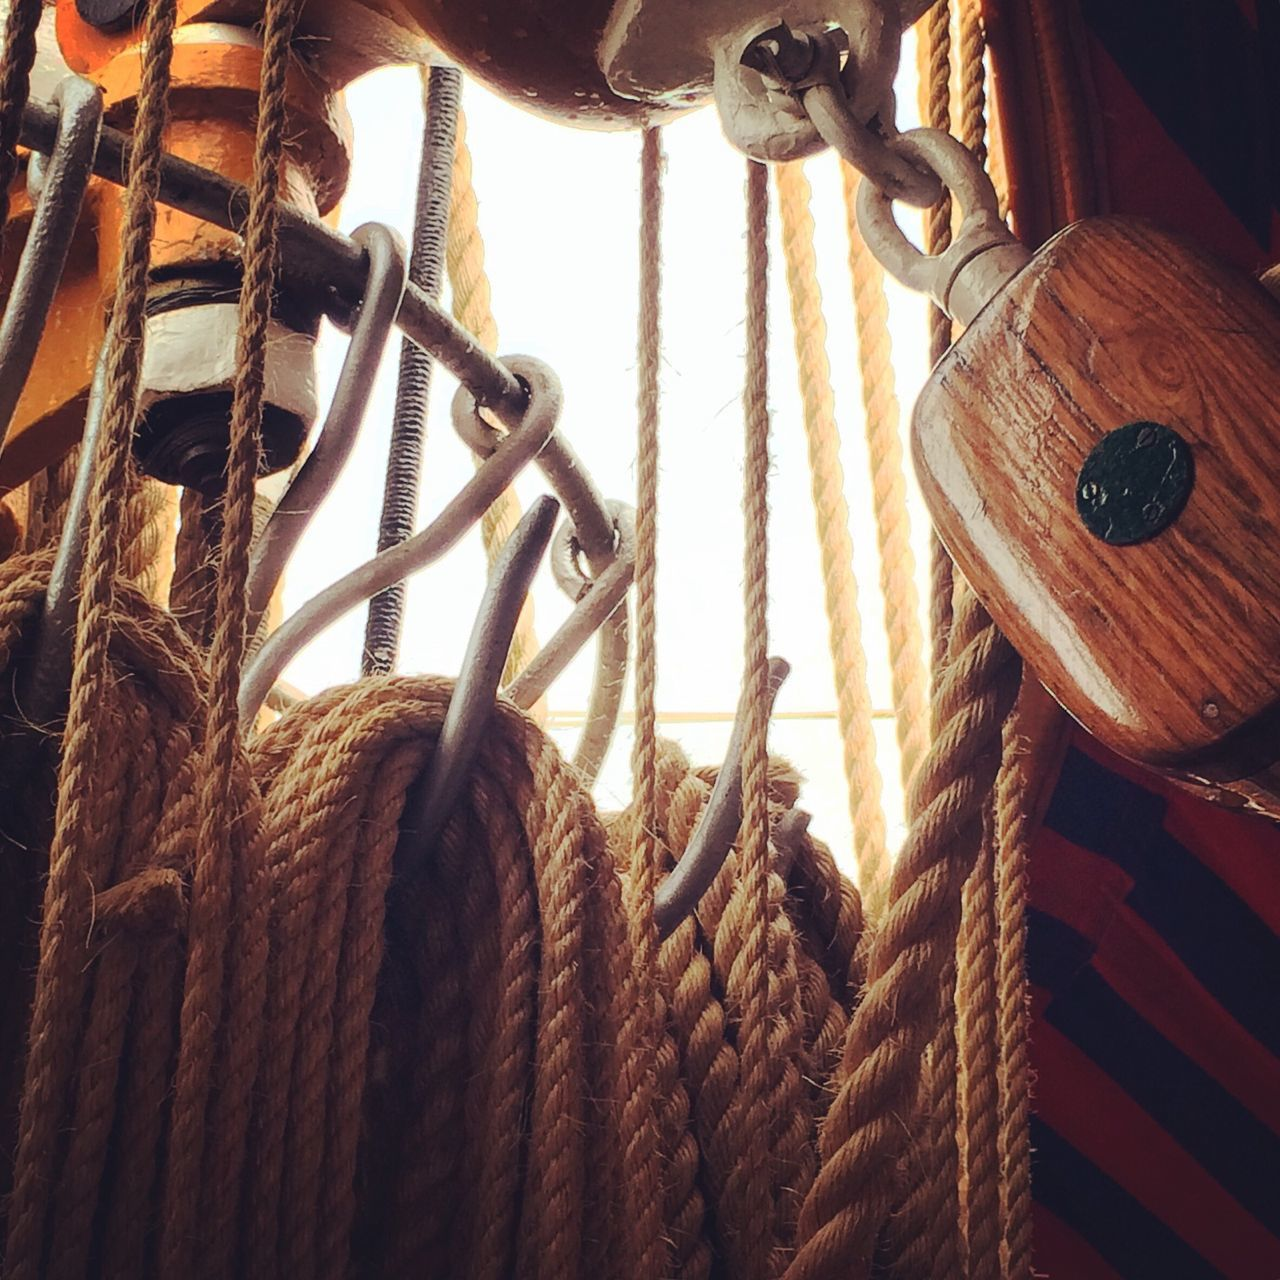 Low Angle View Of Ropes Hanging On Ship